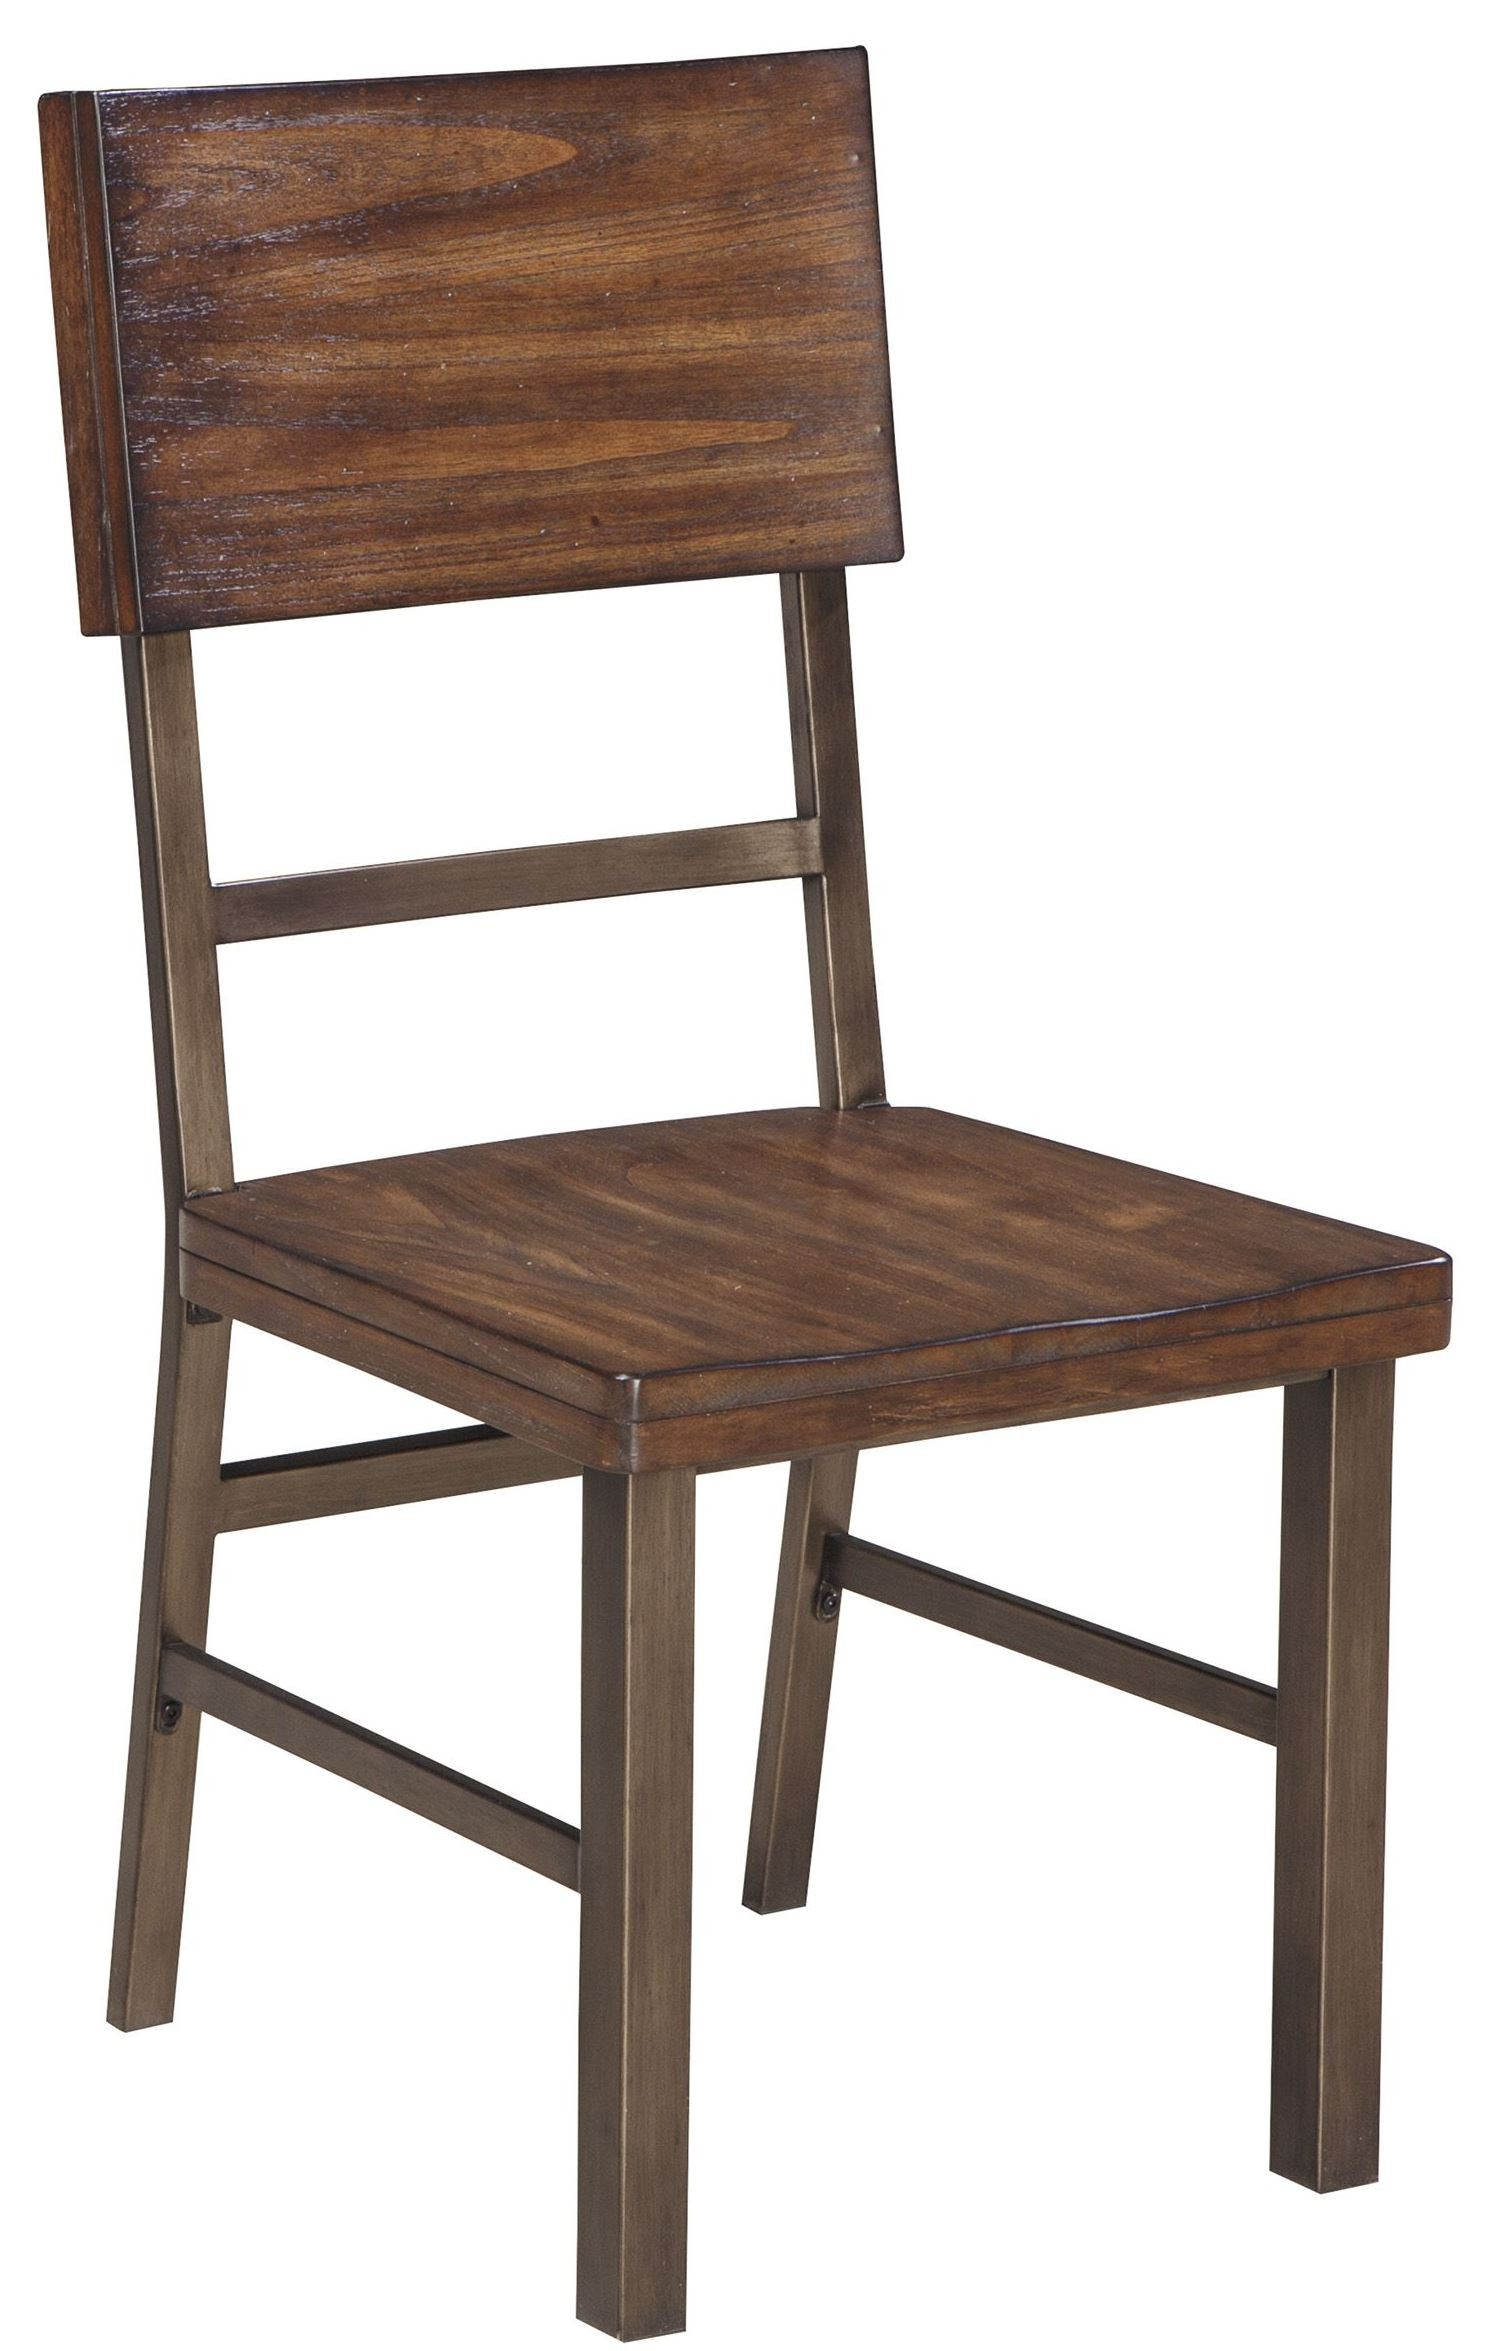 Riggerton Dining Room Side Chair Set of 2 D572 01 Ashley  : d572 01 sw1 from colemanfurniture.com size 1503 x 2351 jpeg 326kB